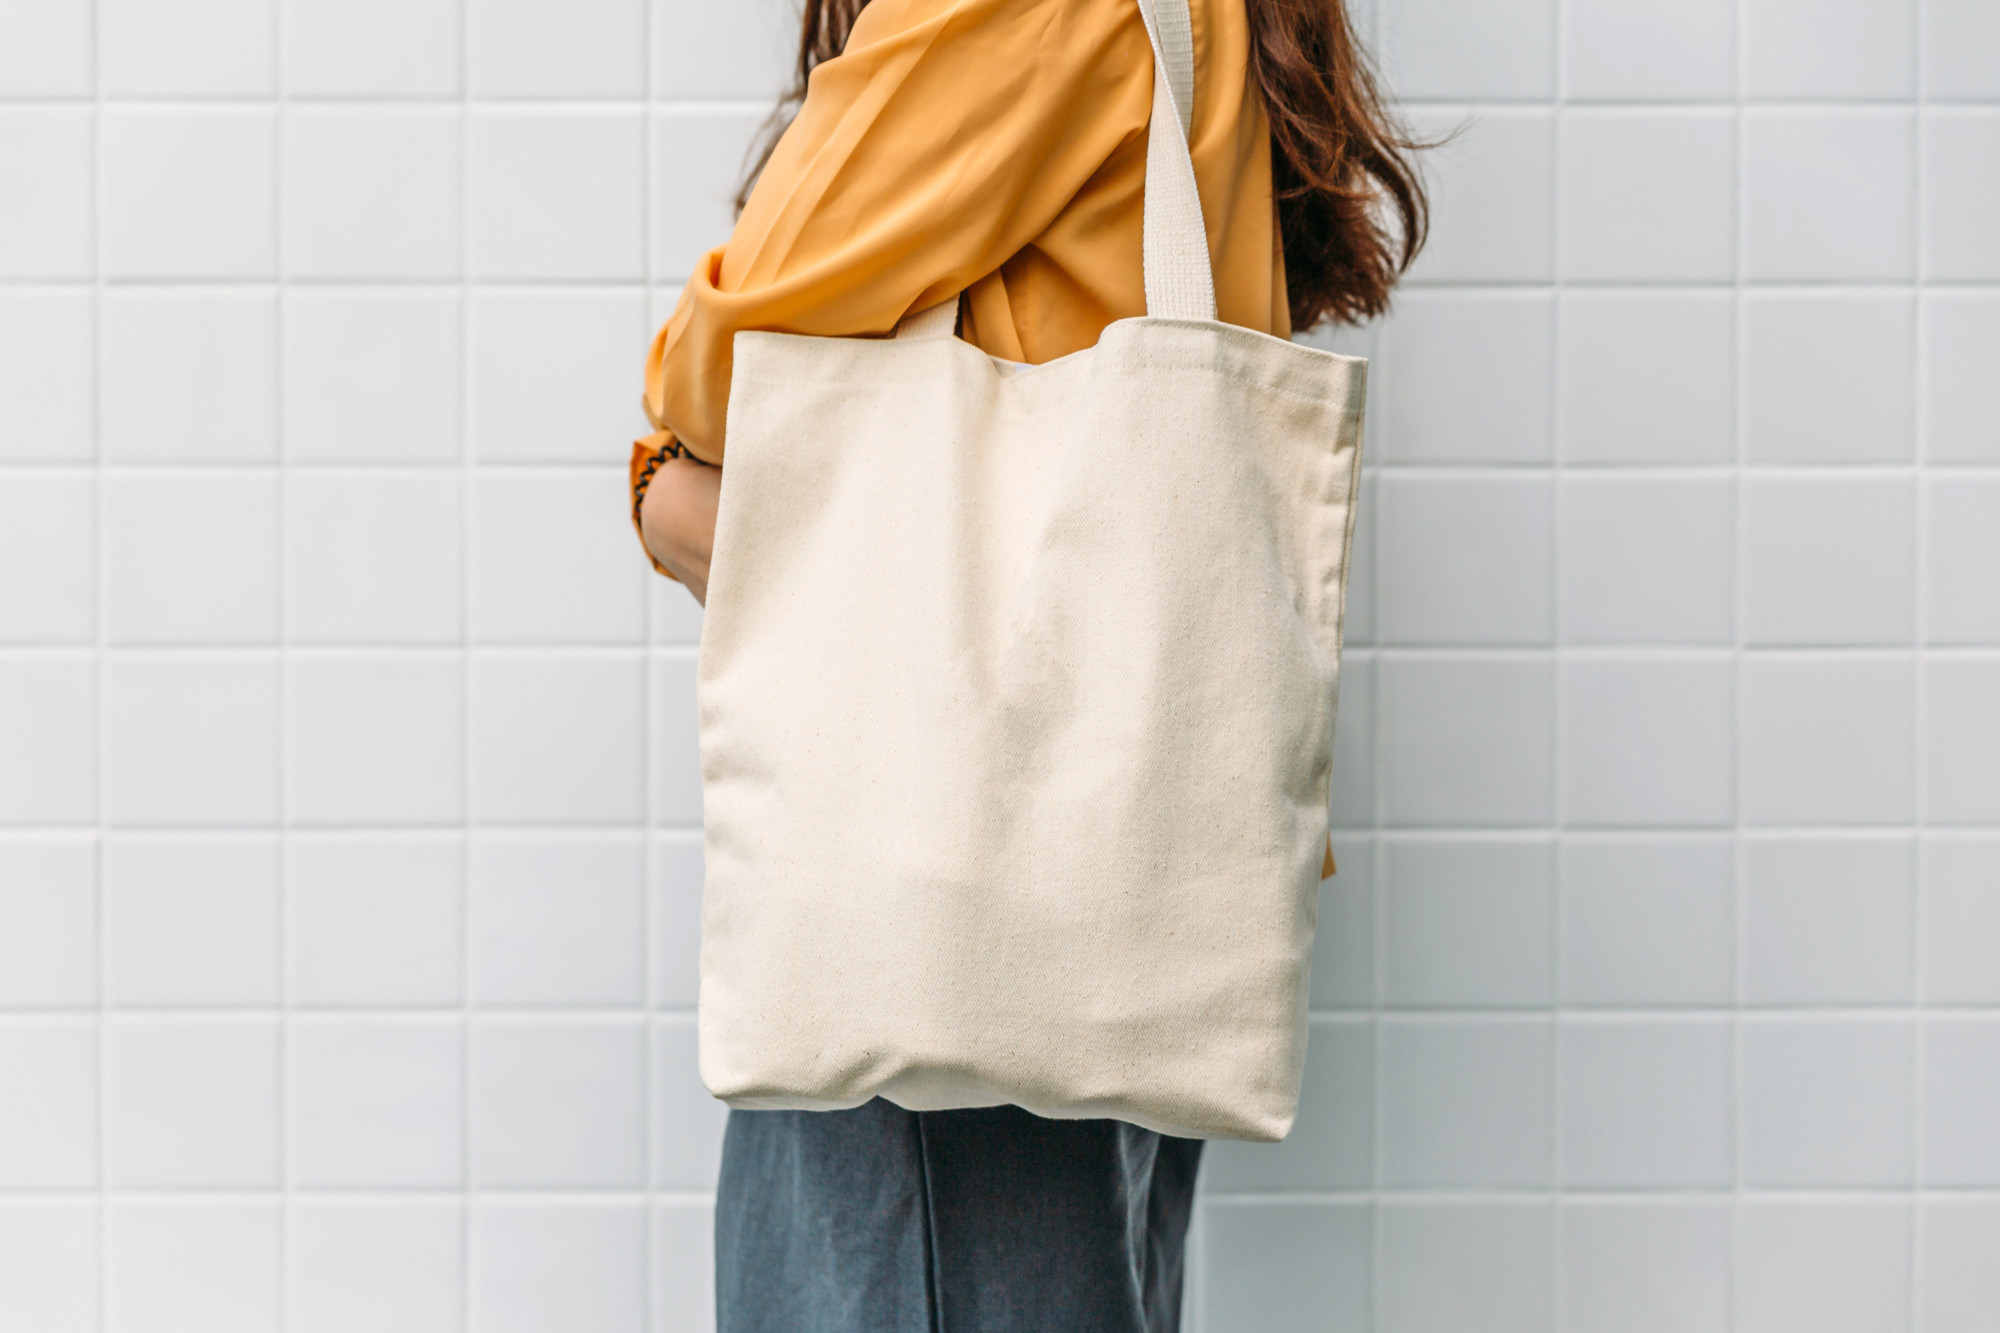 Where to Buy Canvas Tote Bags in Bulk?